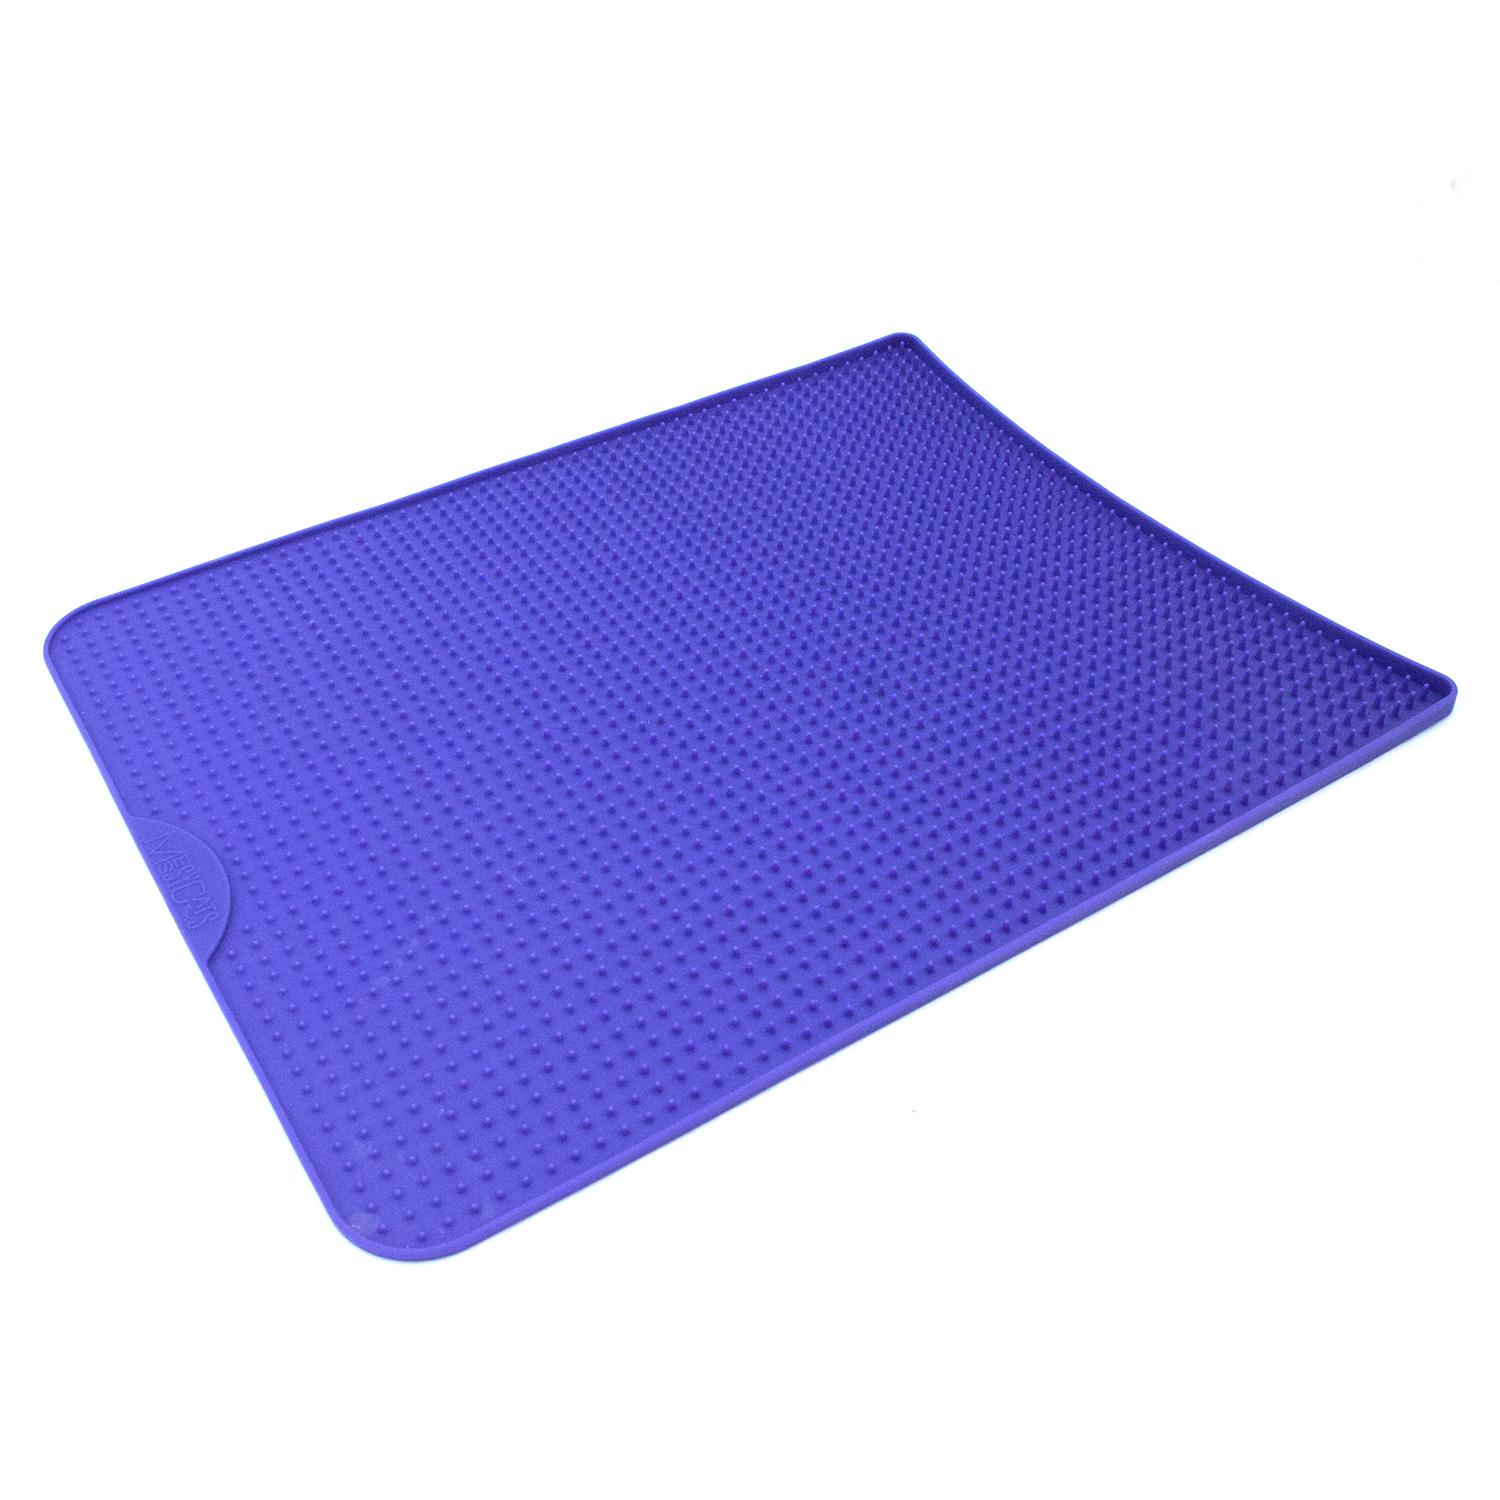 Messy Cats Silicone Litter Mat with Soft Graduated Spikes, Purple